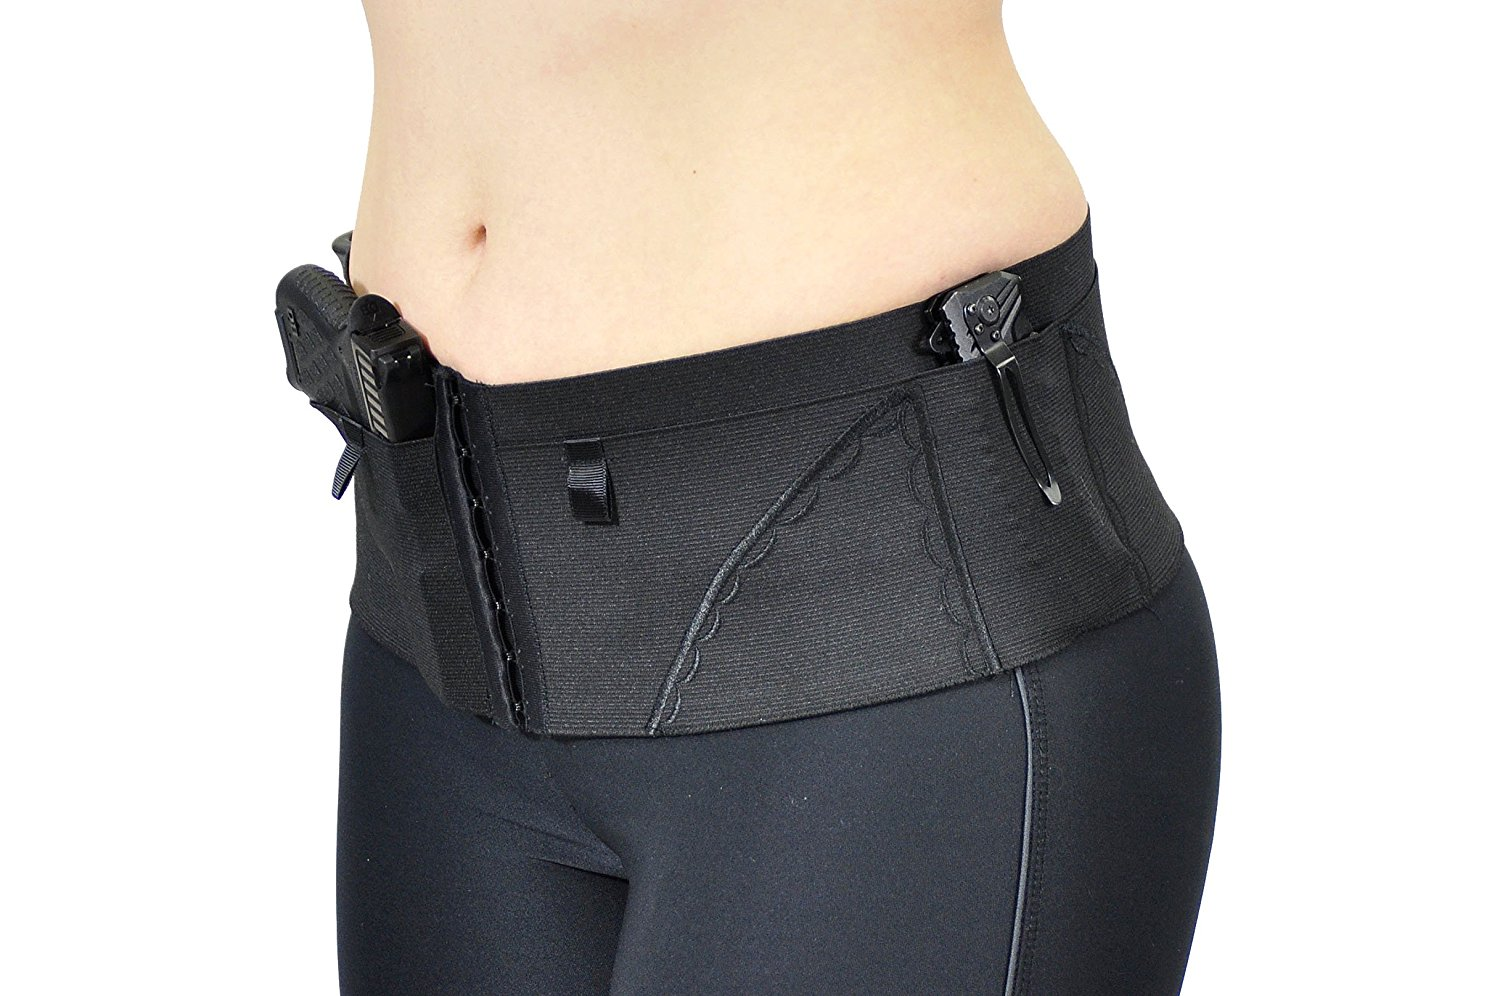 Thigh Holster Shorts for Women by UnderTech Undercover  Holsters For Girls